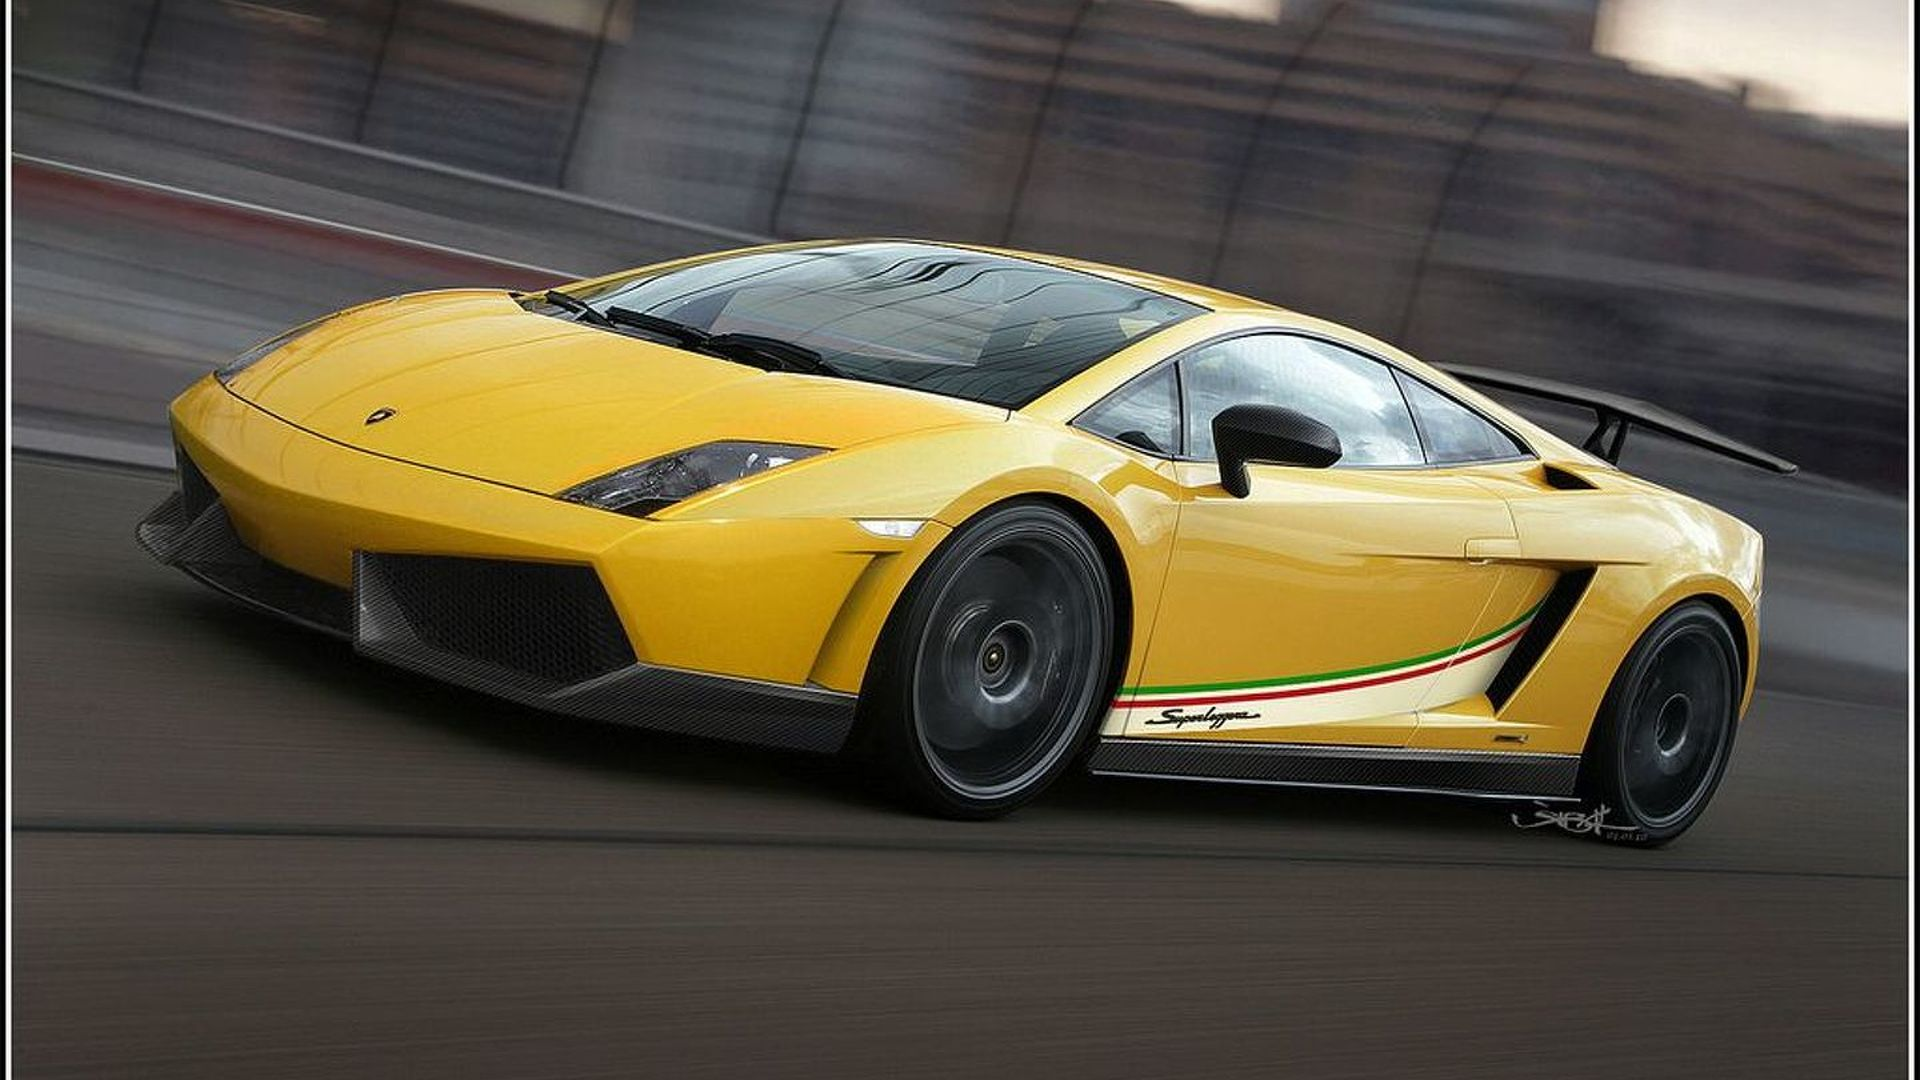 Lamborghini Gallardo LP570 4 Superleggera Further Details And Renderings  Surface